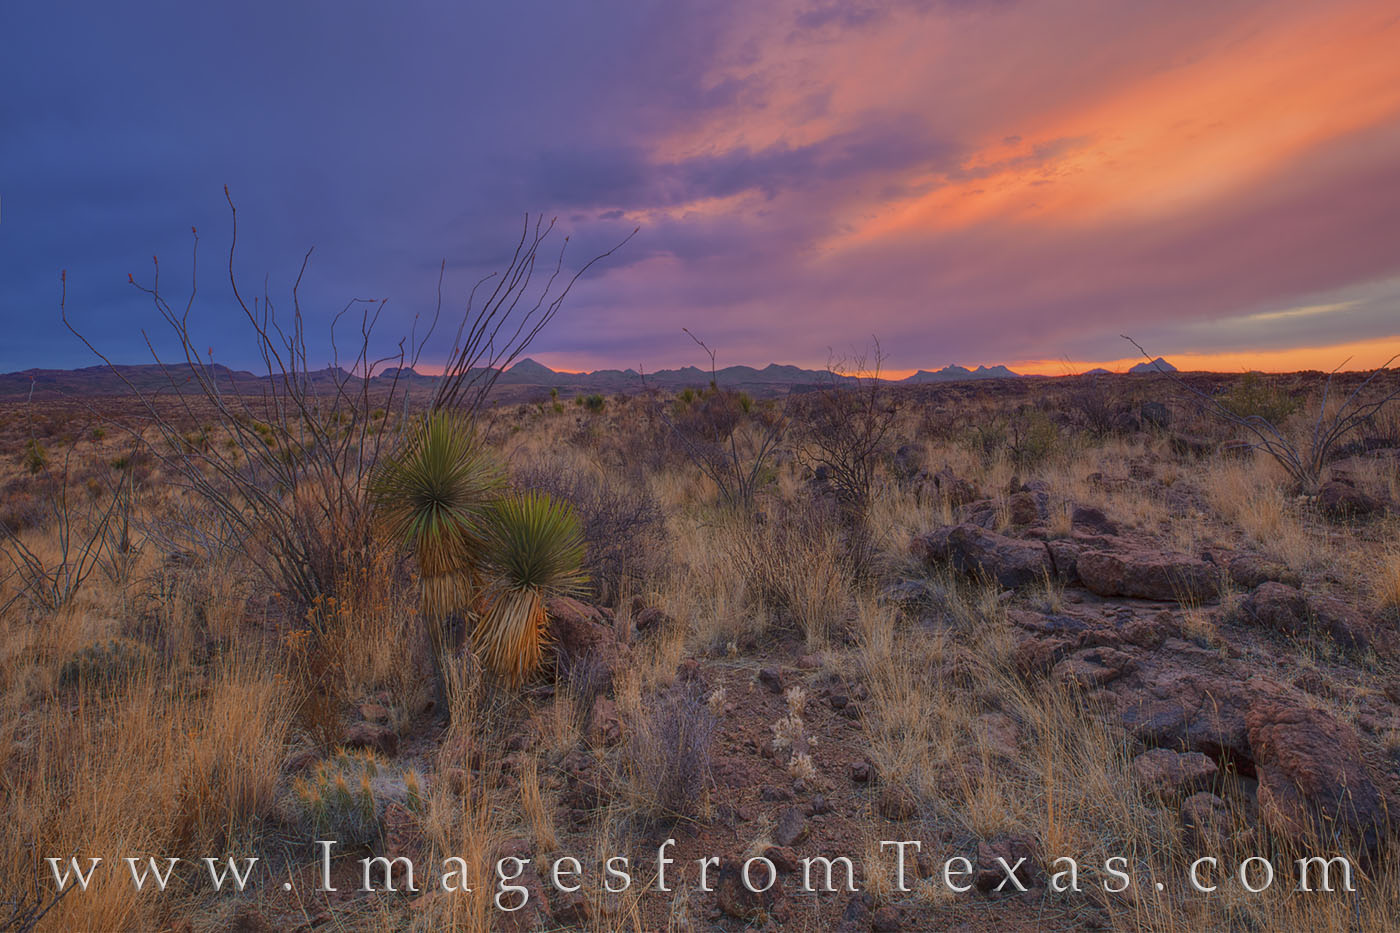 big bend ranch state park, big bend ranch, interior, chihuahuan desert, sunset, yucca, spring, desert, ocotillo, west texas, big bend landscapes, photo